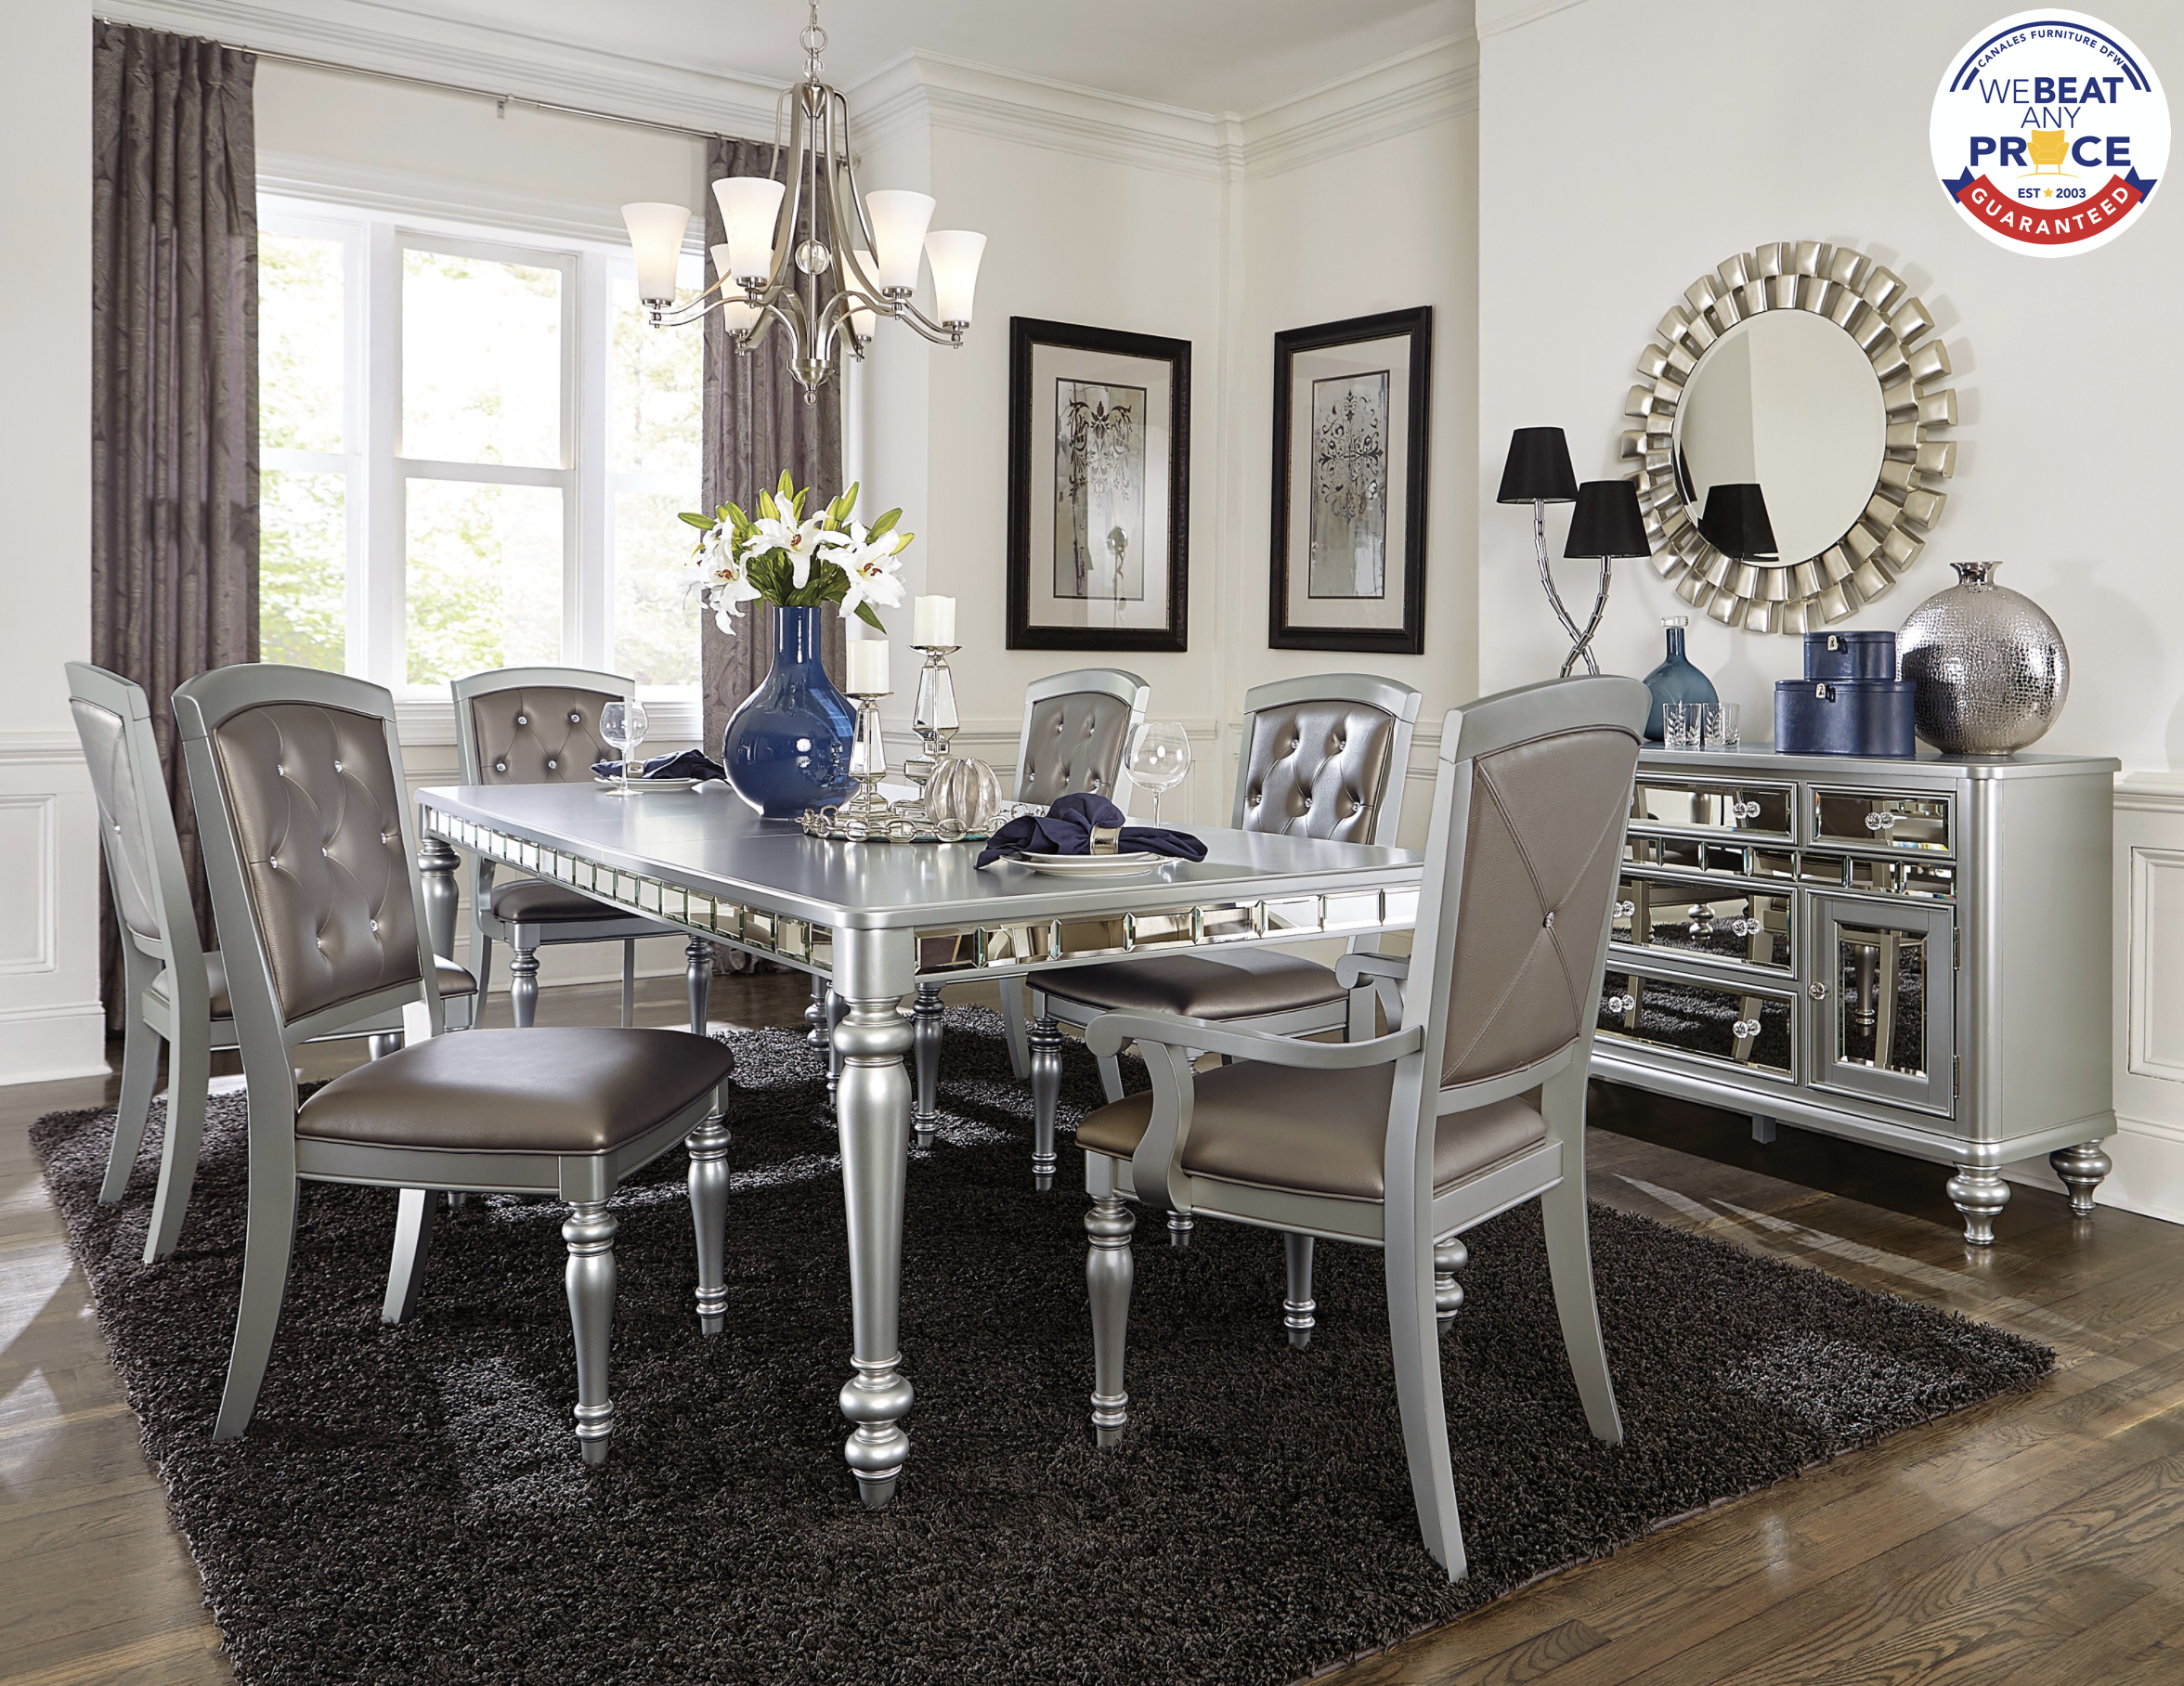 24+ Glam dining chairs set of 4 Top